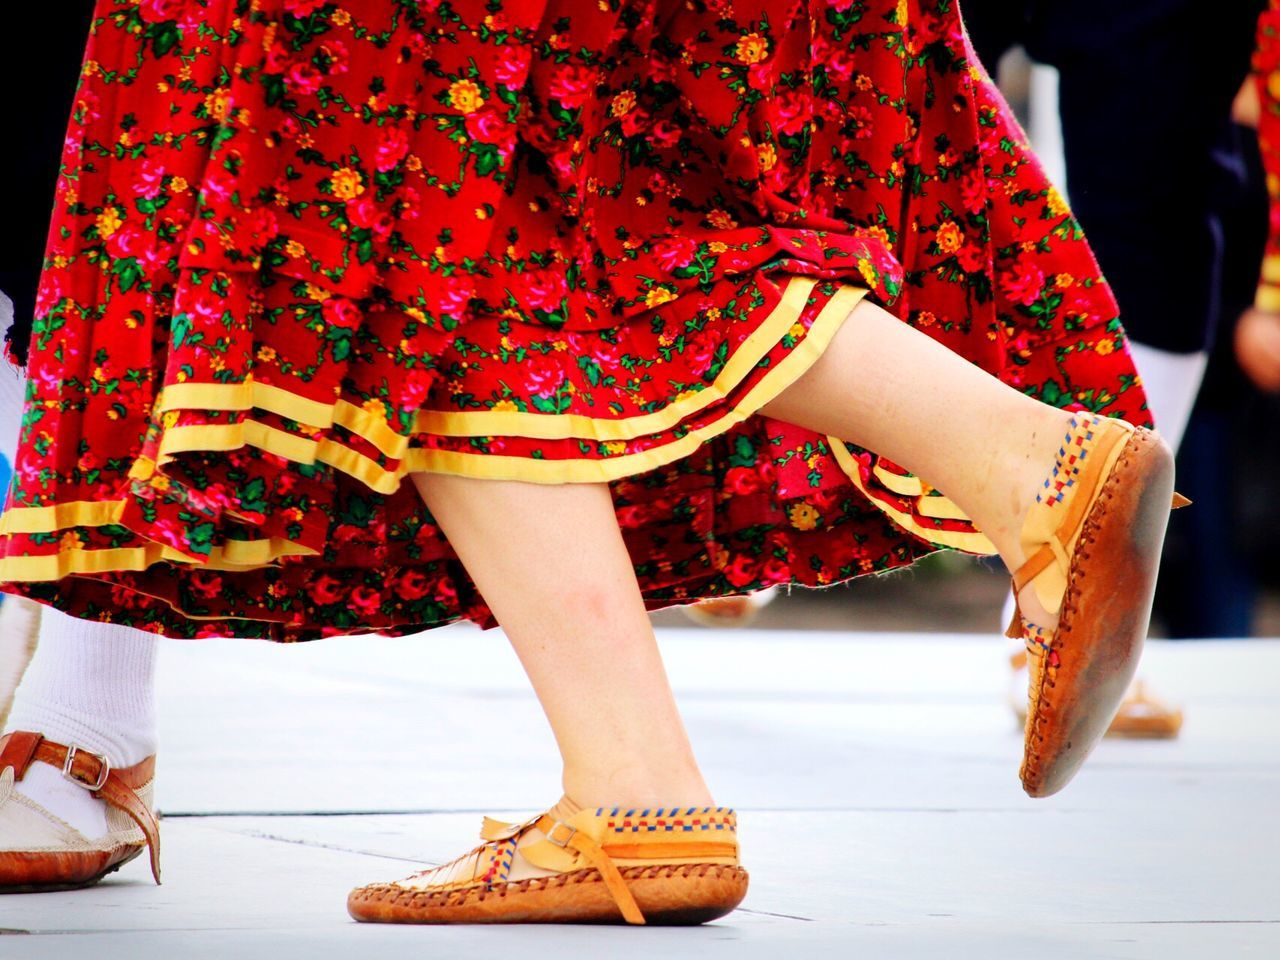 EyeEm Selects Human Leg Low Section One Person Performance Real People Fashion Traditional Clothing Standing Elégance Fashion Show Human Body Part Indoors  Arts Culture And Entertainment Lifestyles Fashion Model Women Day Adult People Festival